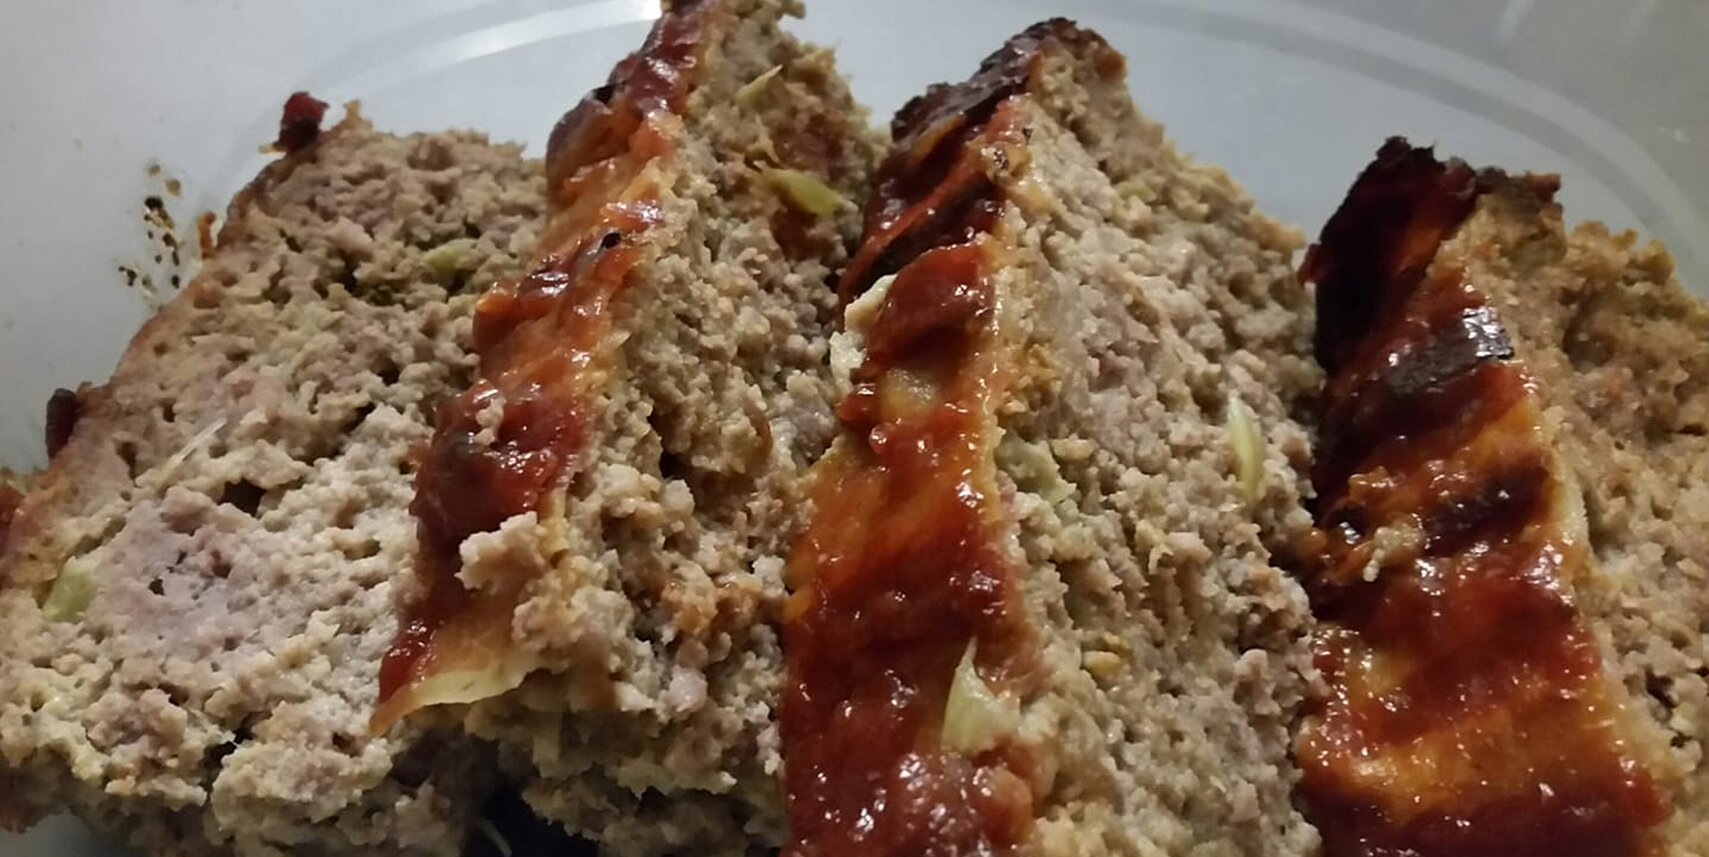 bacon wrapped meatloaf with brown sugar glaze recipe